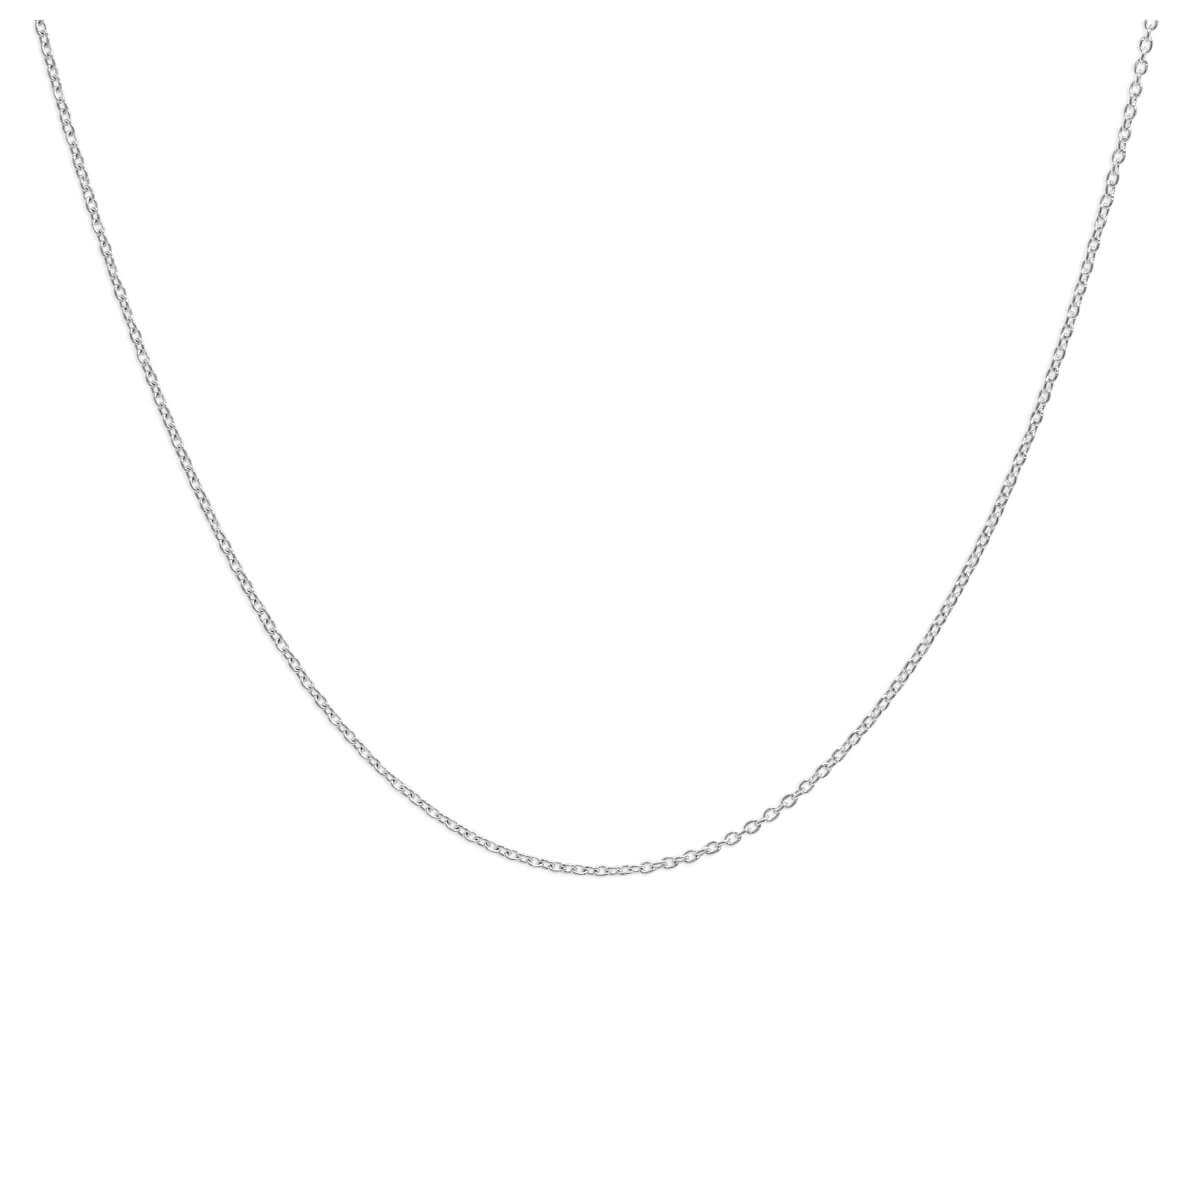 Sterling Silver Adjustable Slider Pendant Chain up to 24 Inches